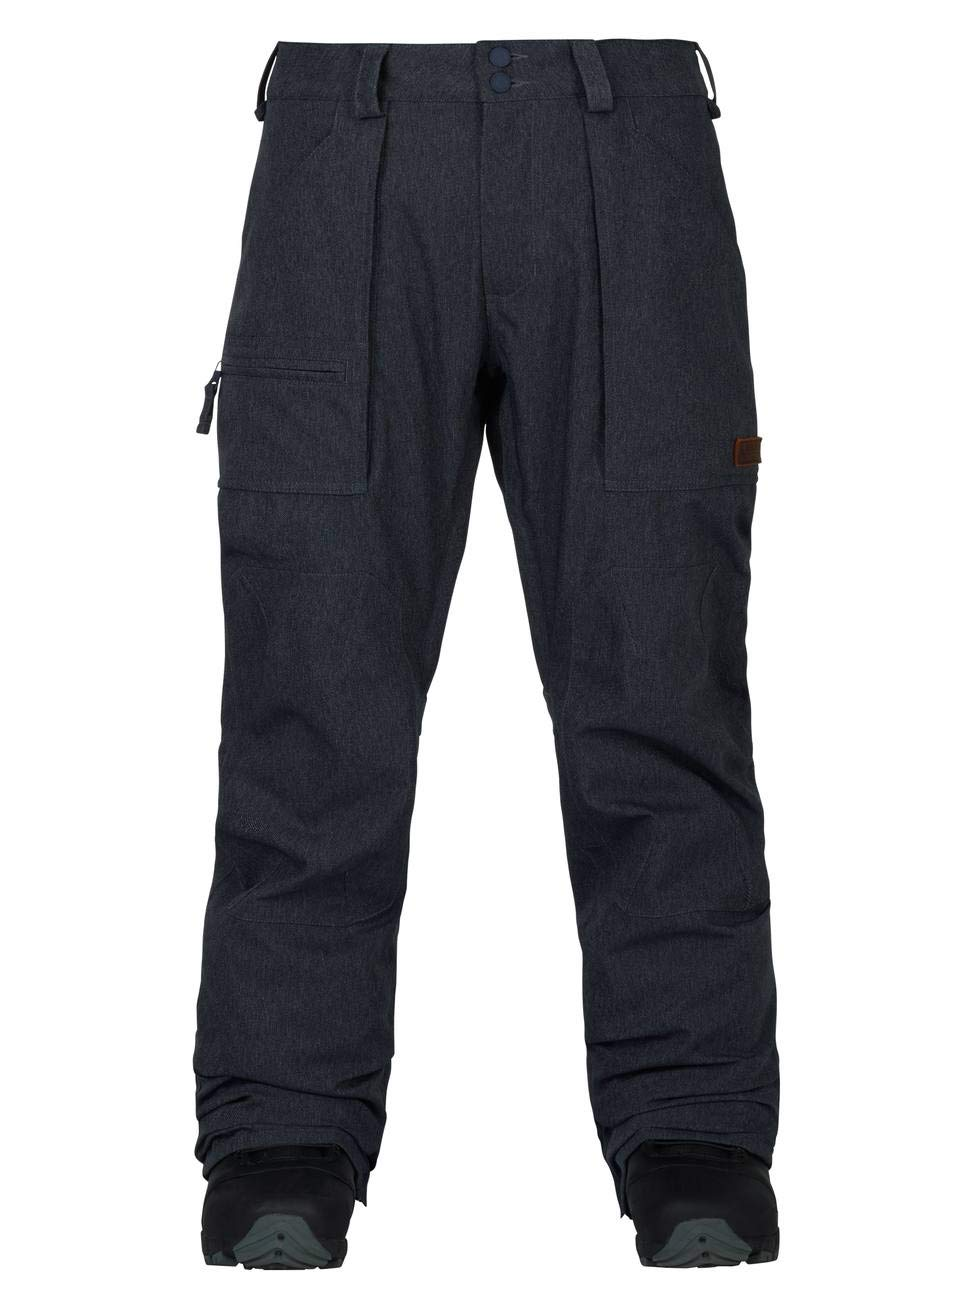 Burton Southside Regular Fit Ski Snowboard Pants Denim, Men's Large Men' s Large 10192104401